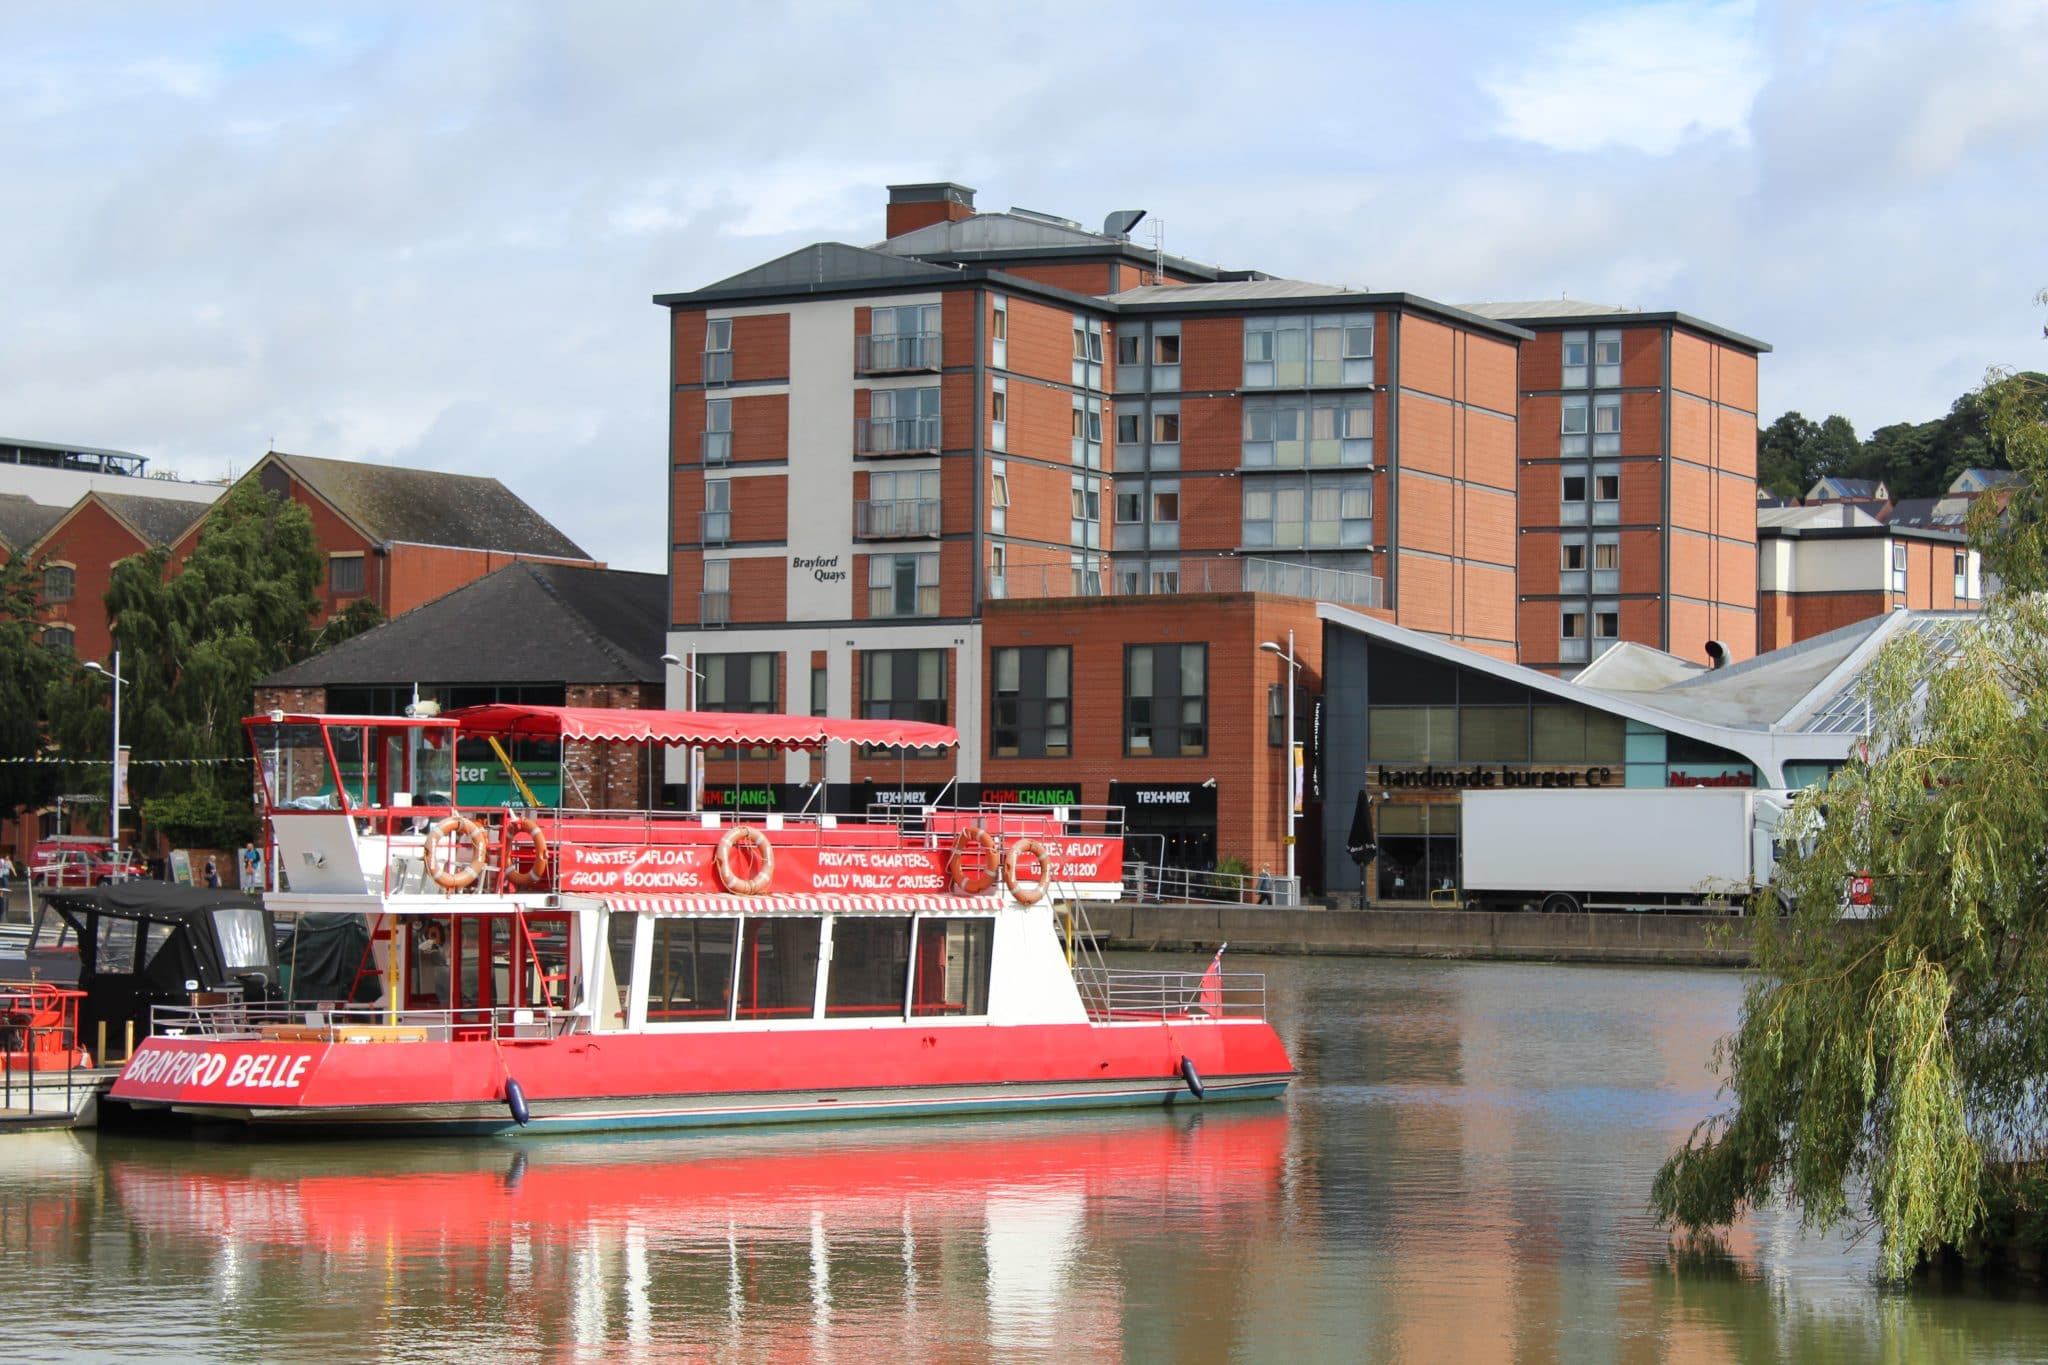 Lincoln Boat Trips - A Journey on the Brayford Belle